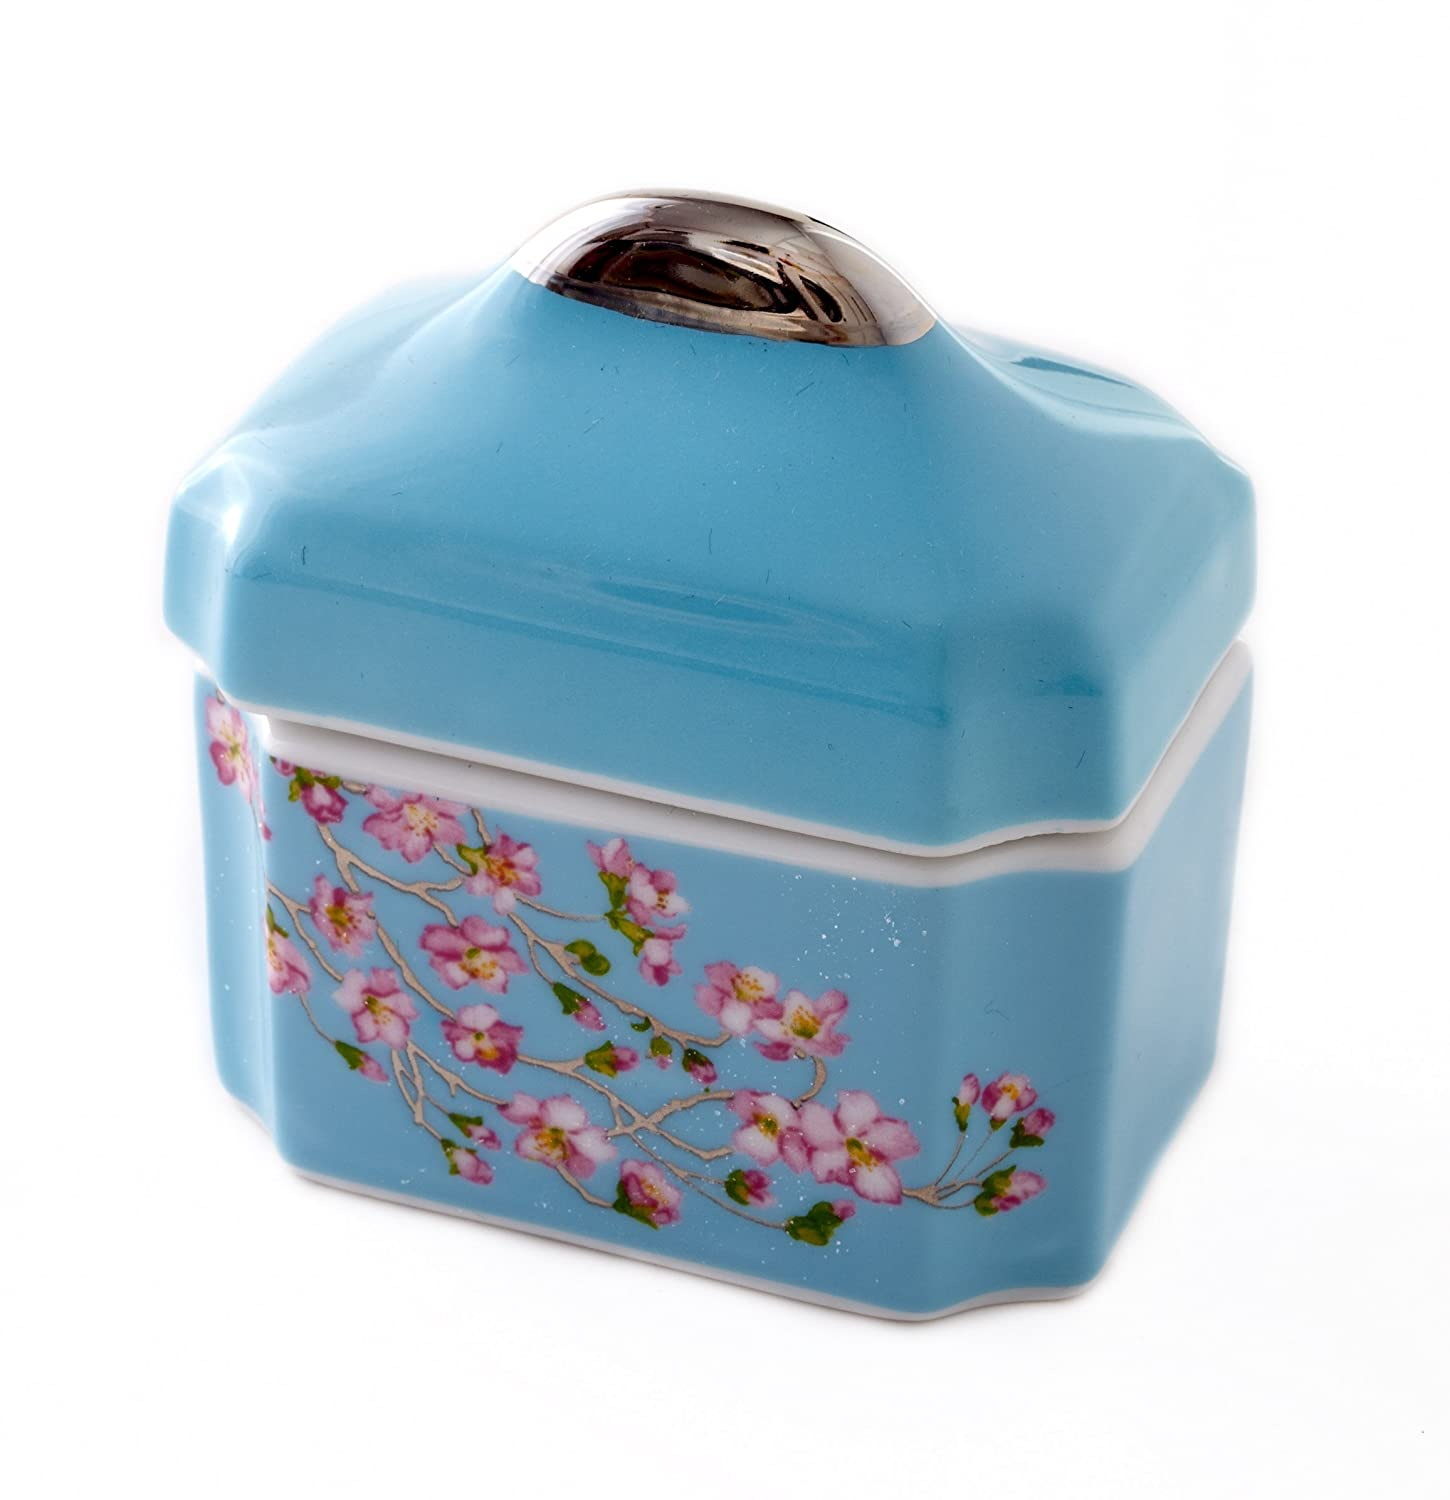 CRU by Darbie Angell Madison's April in NY Sugar Bowl, Sea Blue/Pink